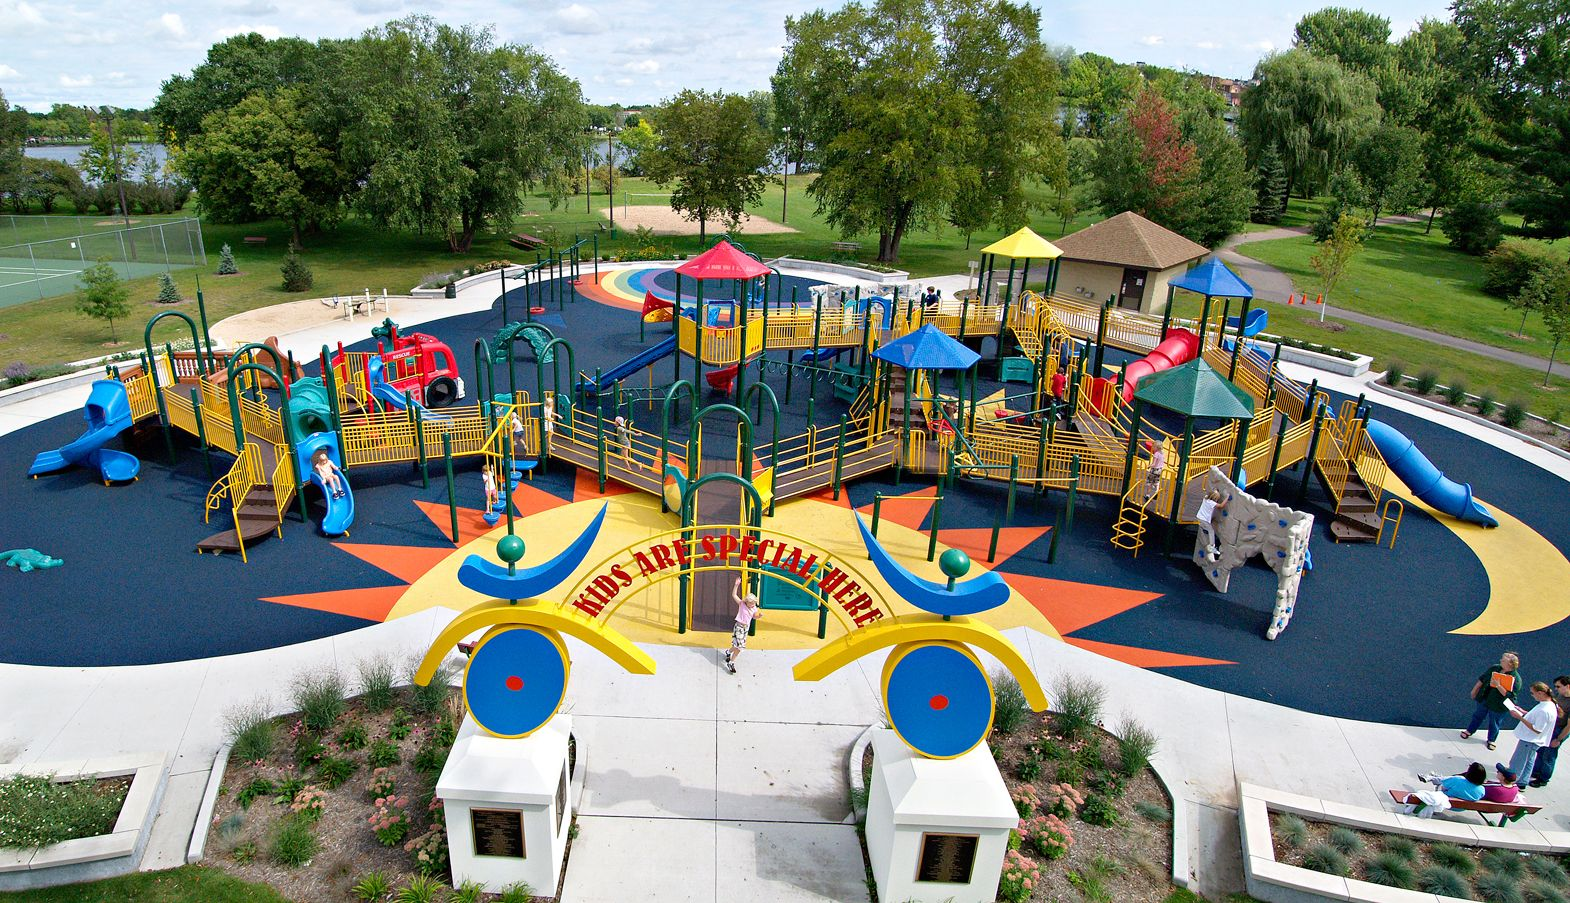 All Inclusive Playgrounds Allow Everyone To Get Out And